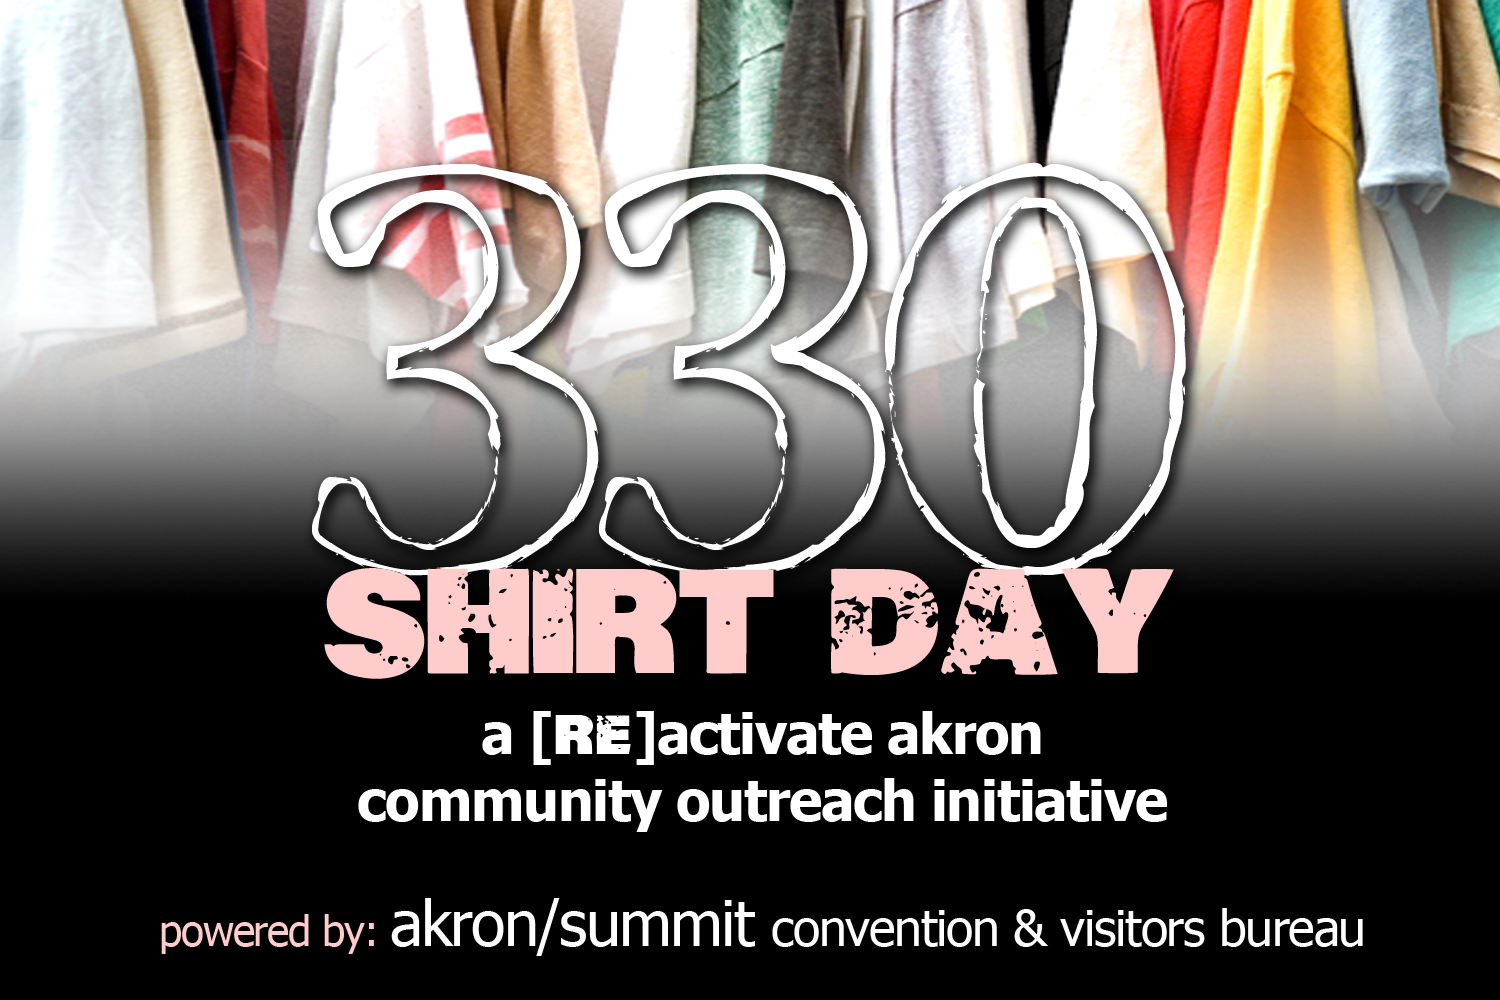 wear-your-330-shirt-to-work-day-banner